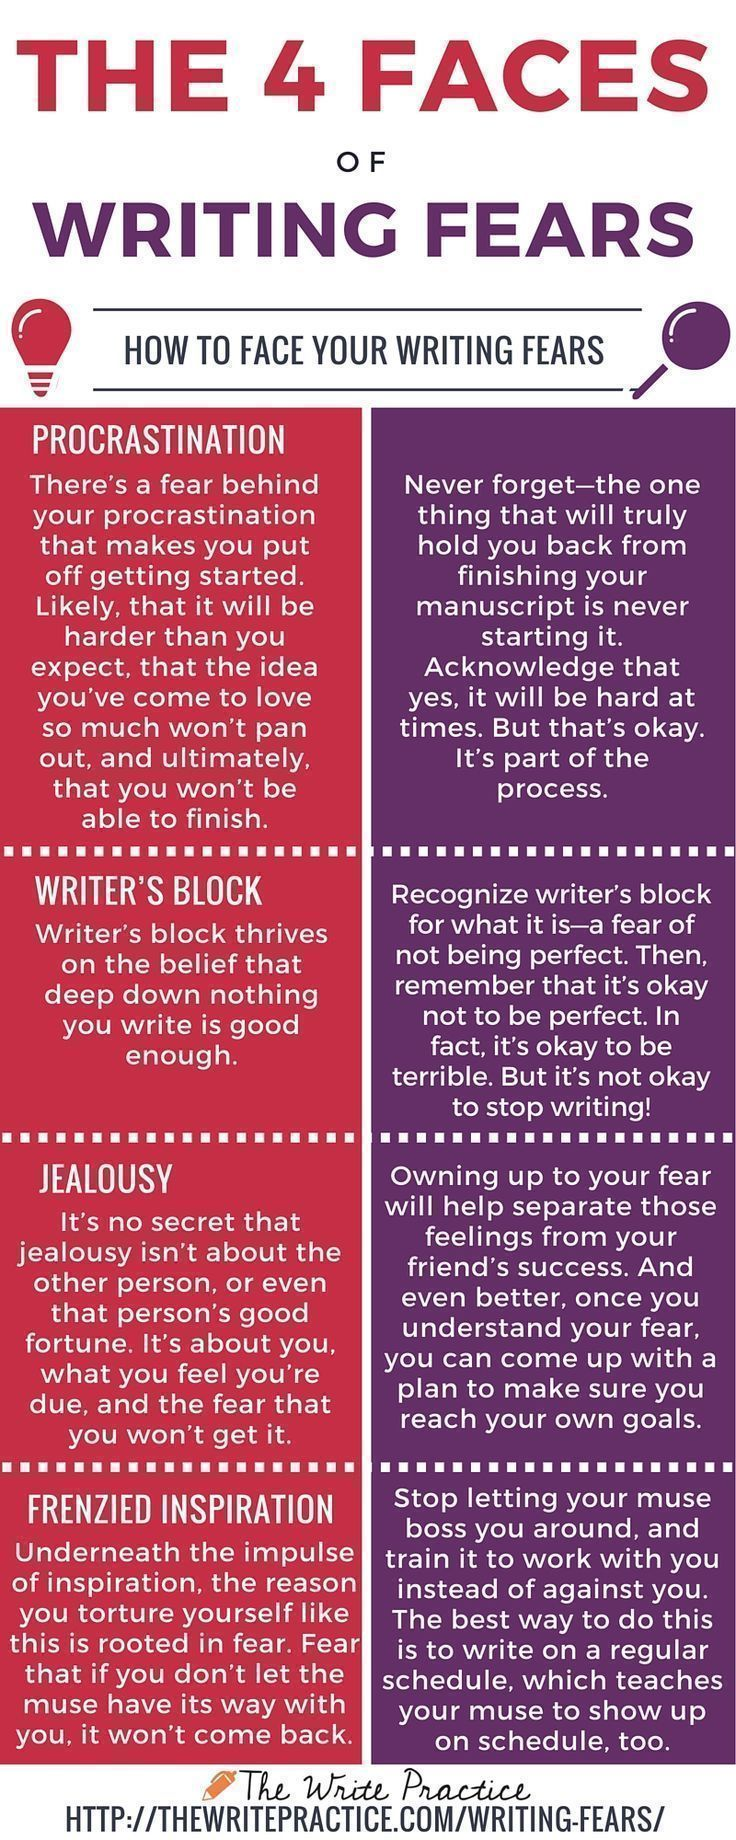 The Four Faces of Writing Fears